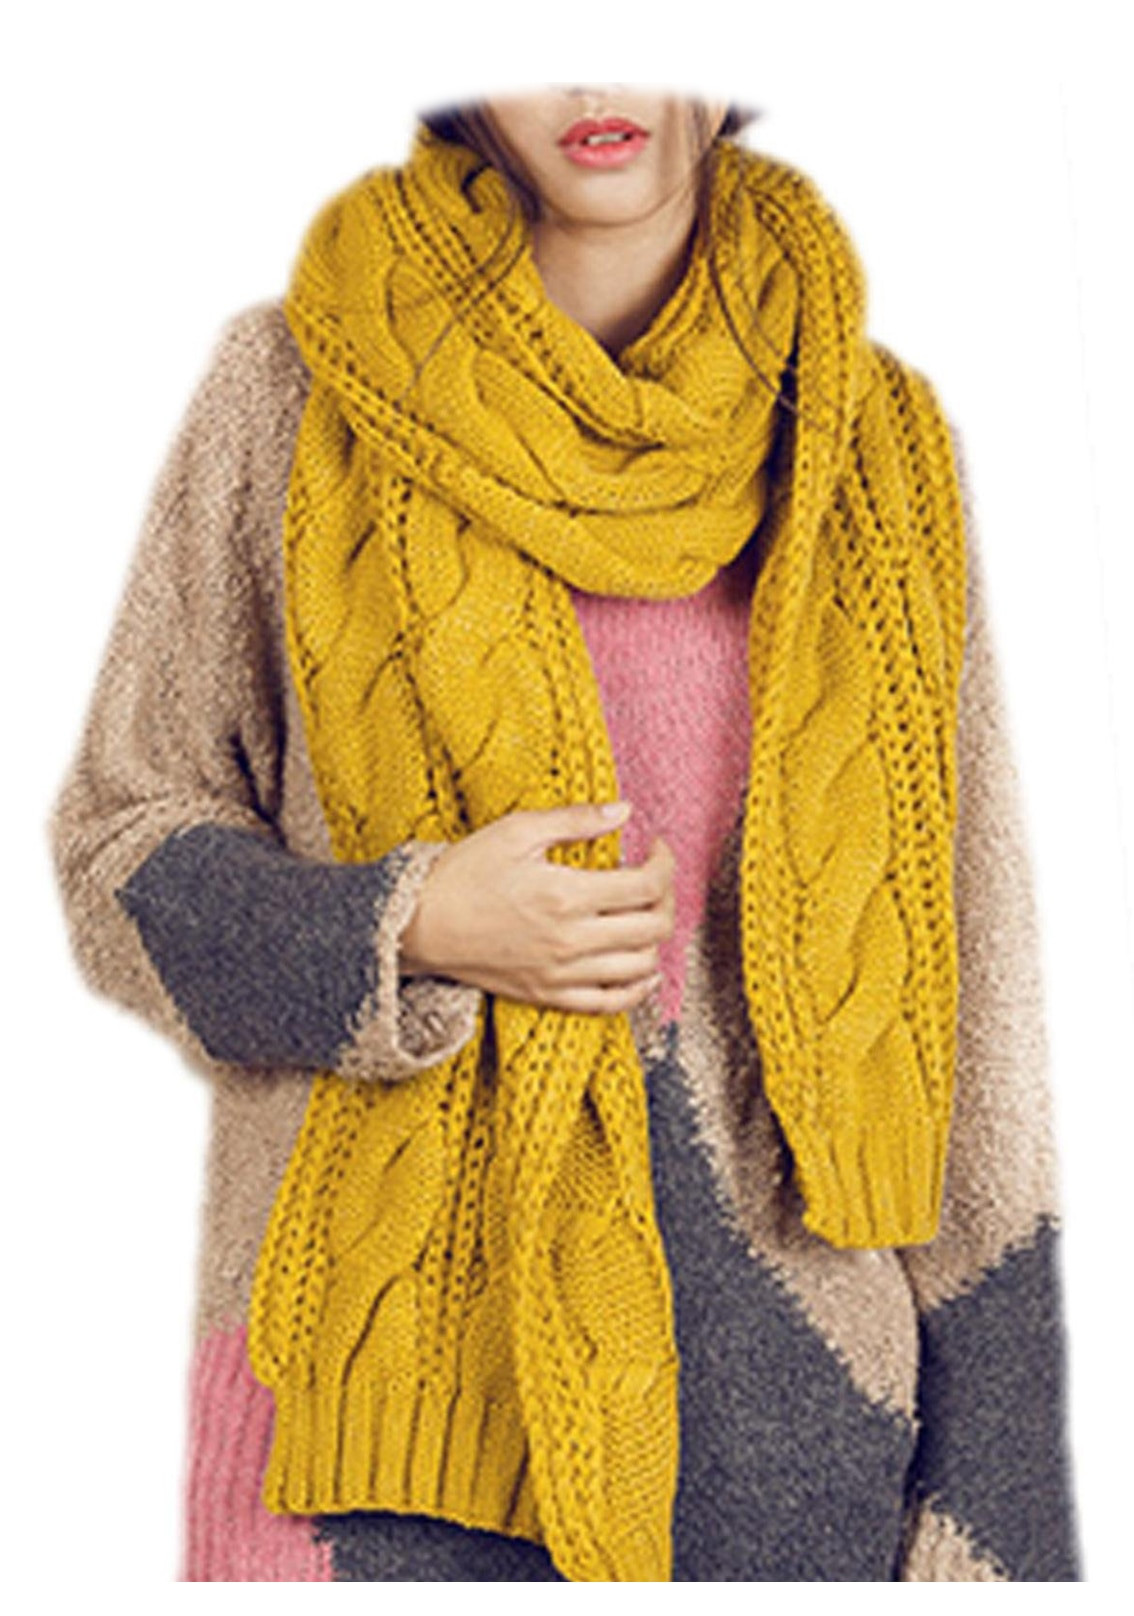 Best Of Line Buy wholesale Crochet Scarf From China Crochet Cable Scarf Of Innovative 49 Ideas Cable Scarf